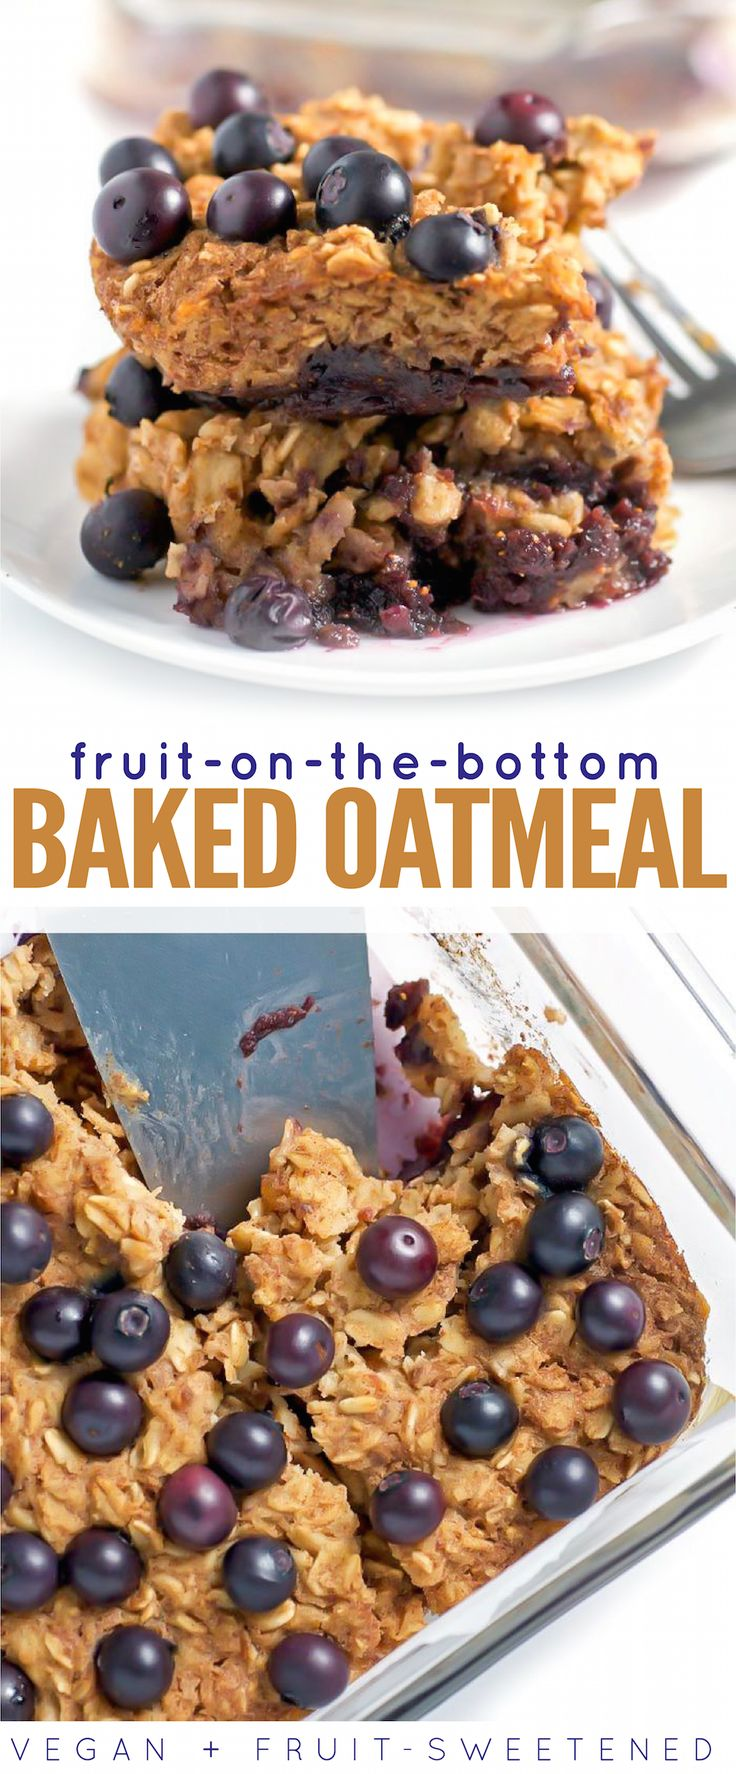 Fruit-on-the-Bottom Baked Oatmeal #blueberry #breakfast #healthy #vegan #sugarfree #glutenfree